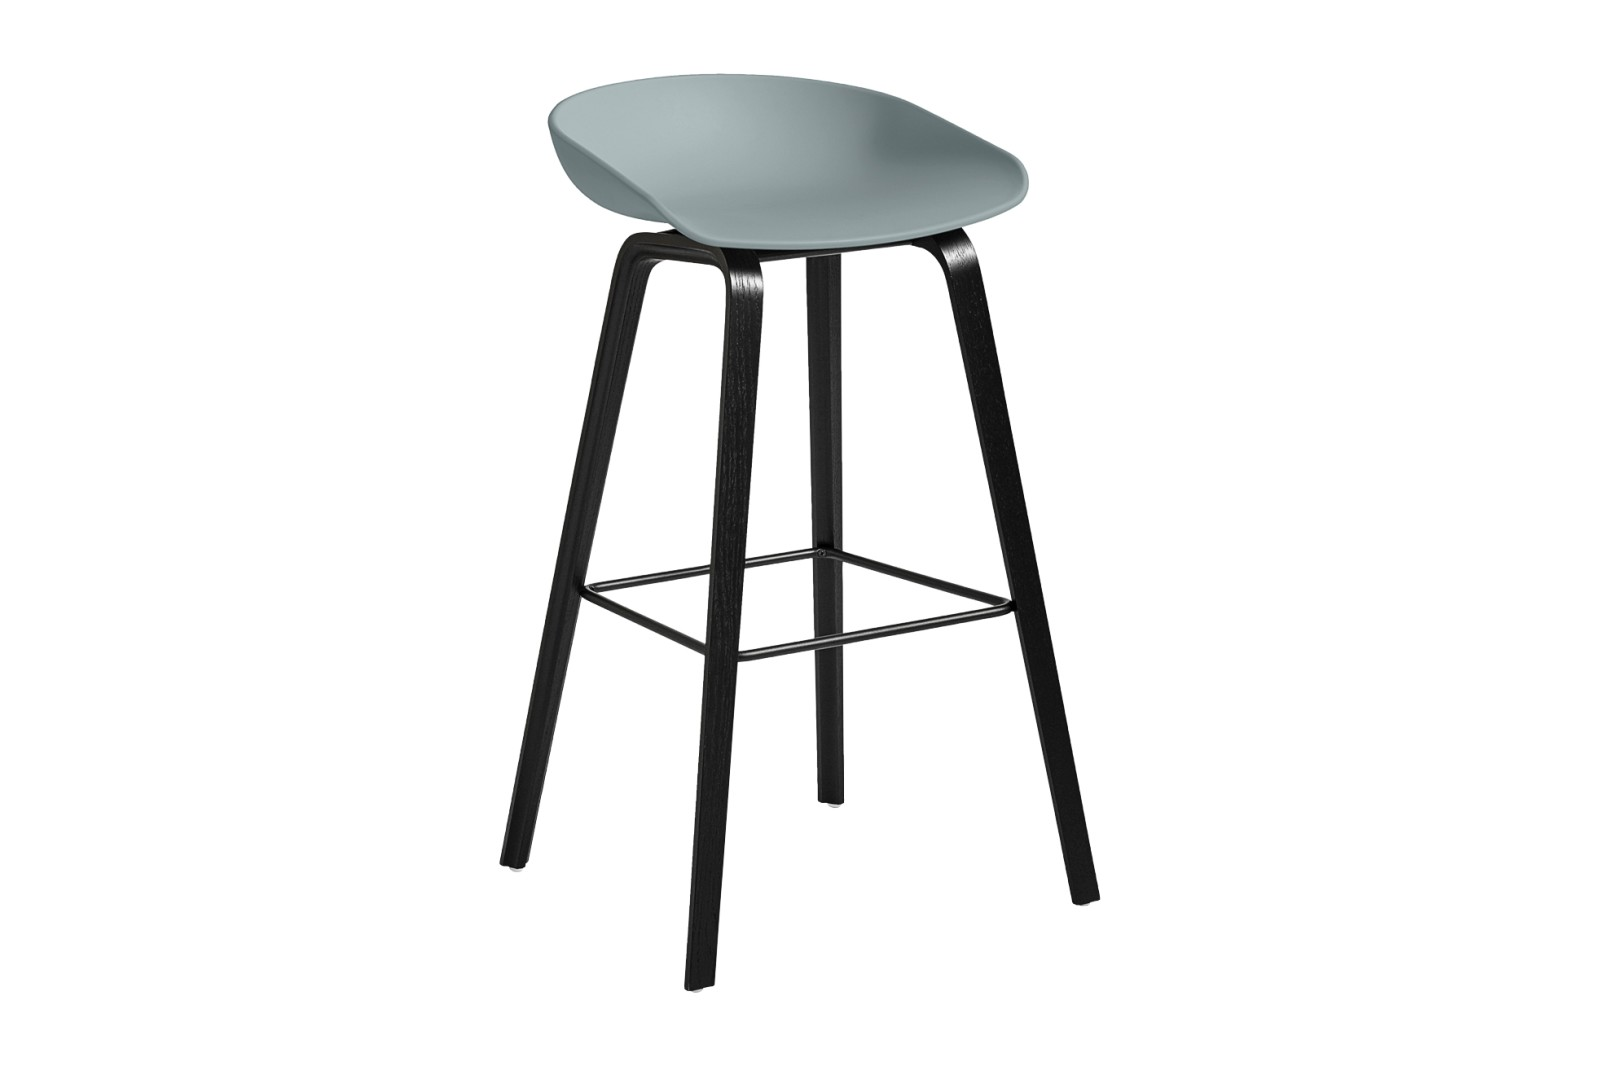 About A Stool AAS32 Black Stained Oak Base, Dusty Blue Seat, High, Black Powder Coated Steel